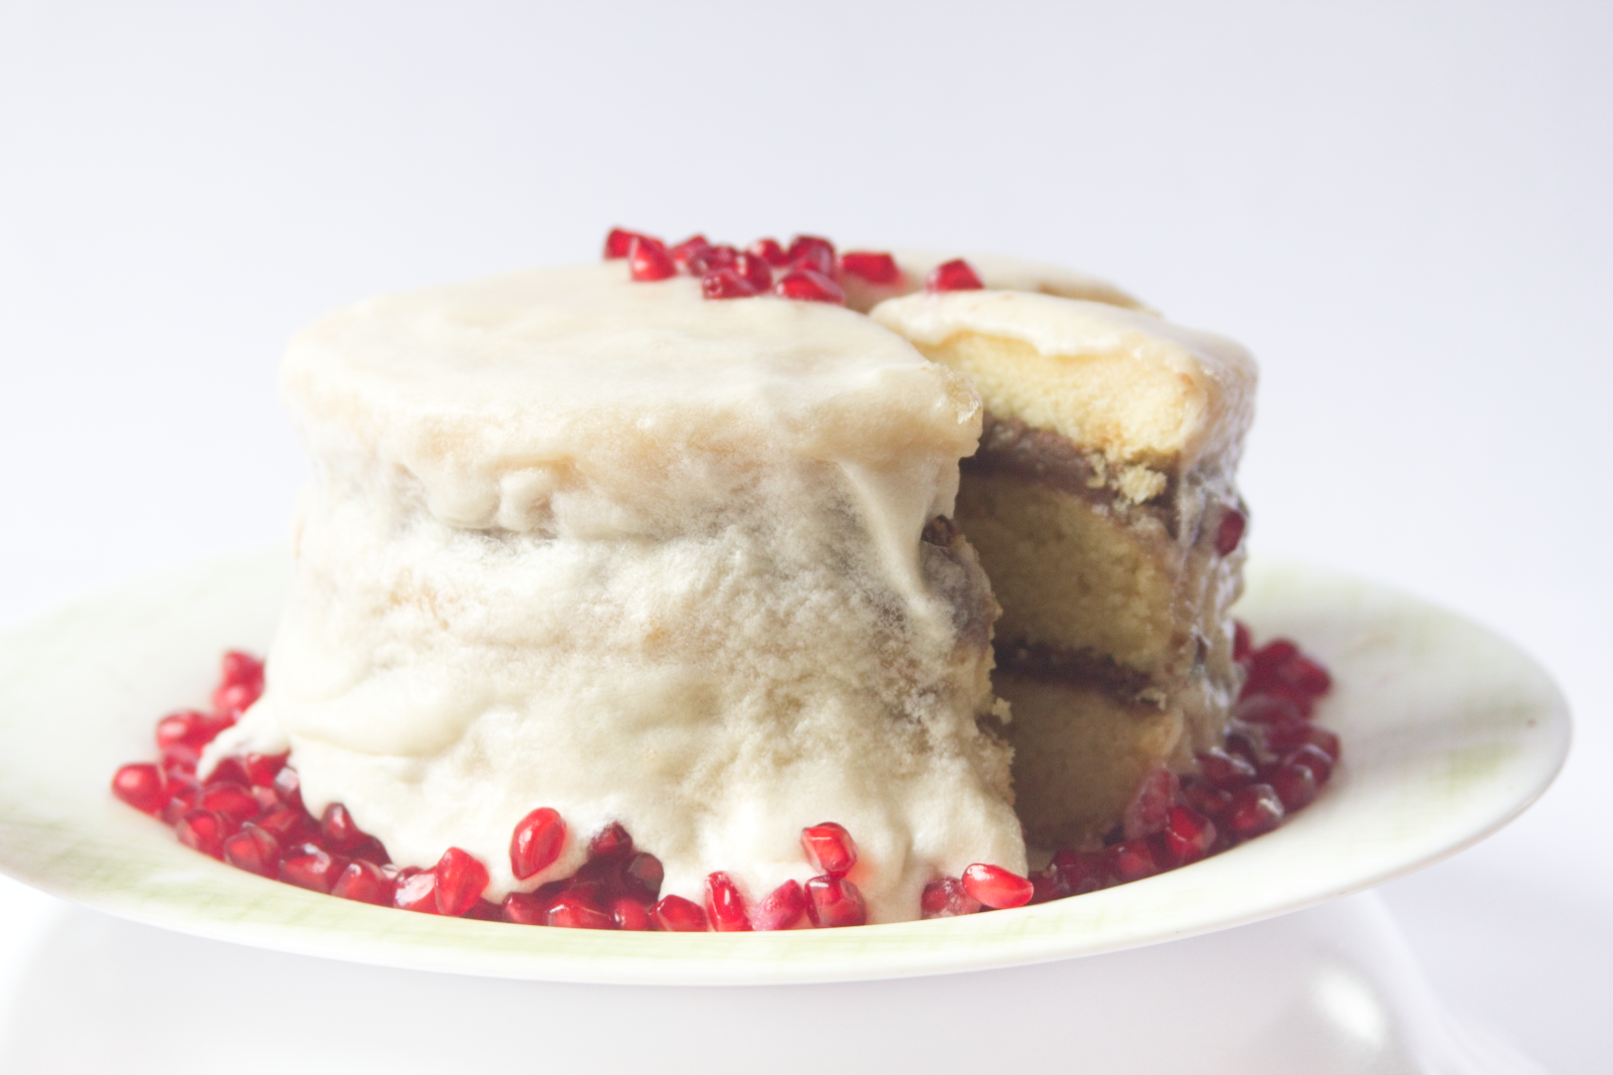 Pomegranate Layer Cake with Butter Cream Frosting